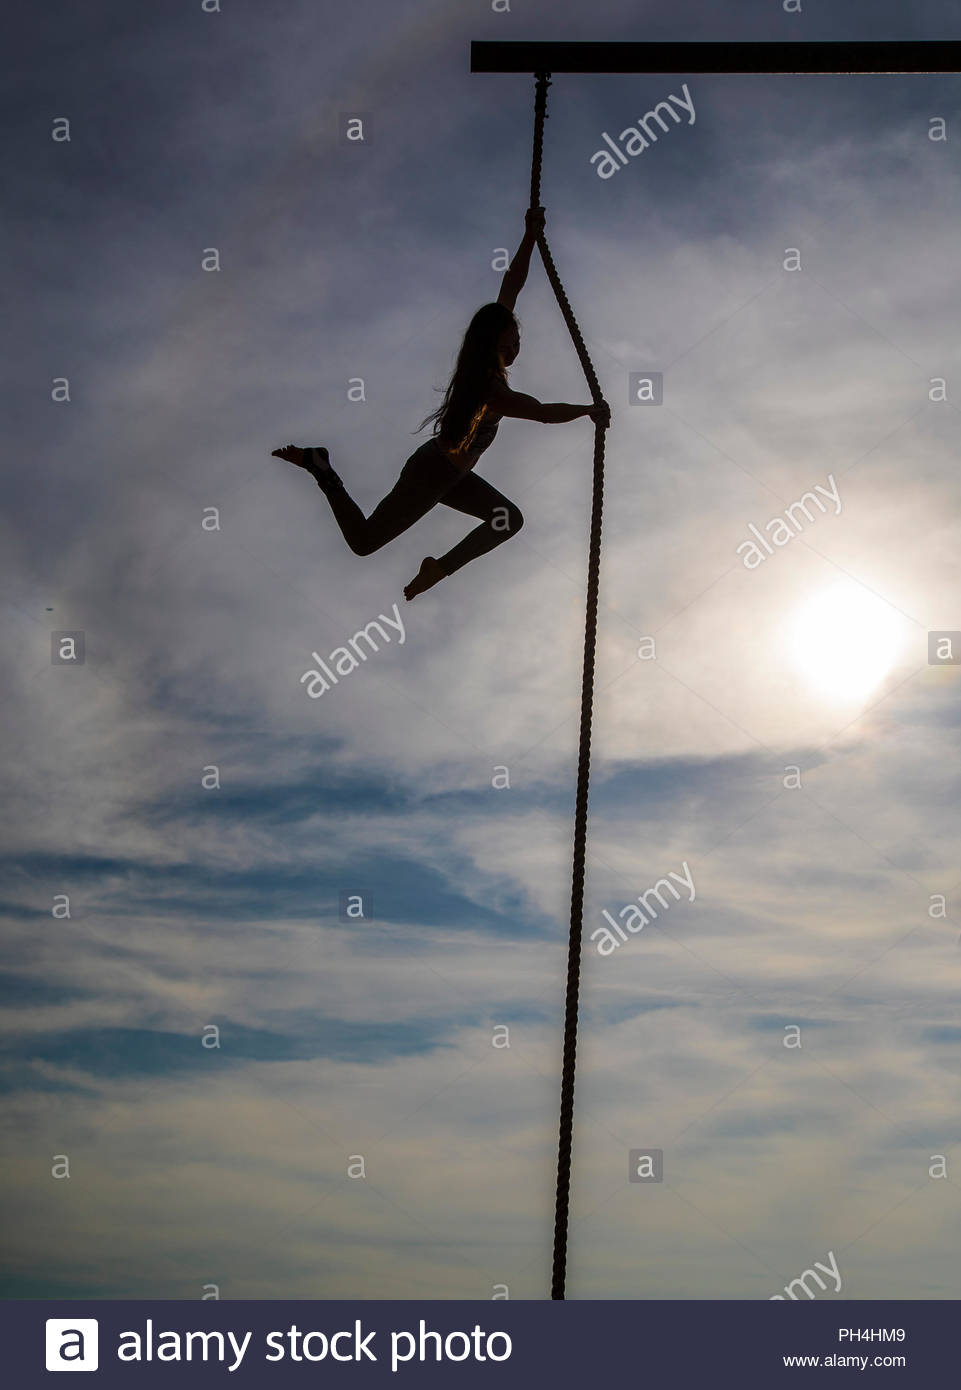 Silhouette of woman swinging on rope - Stock Image